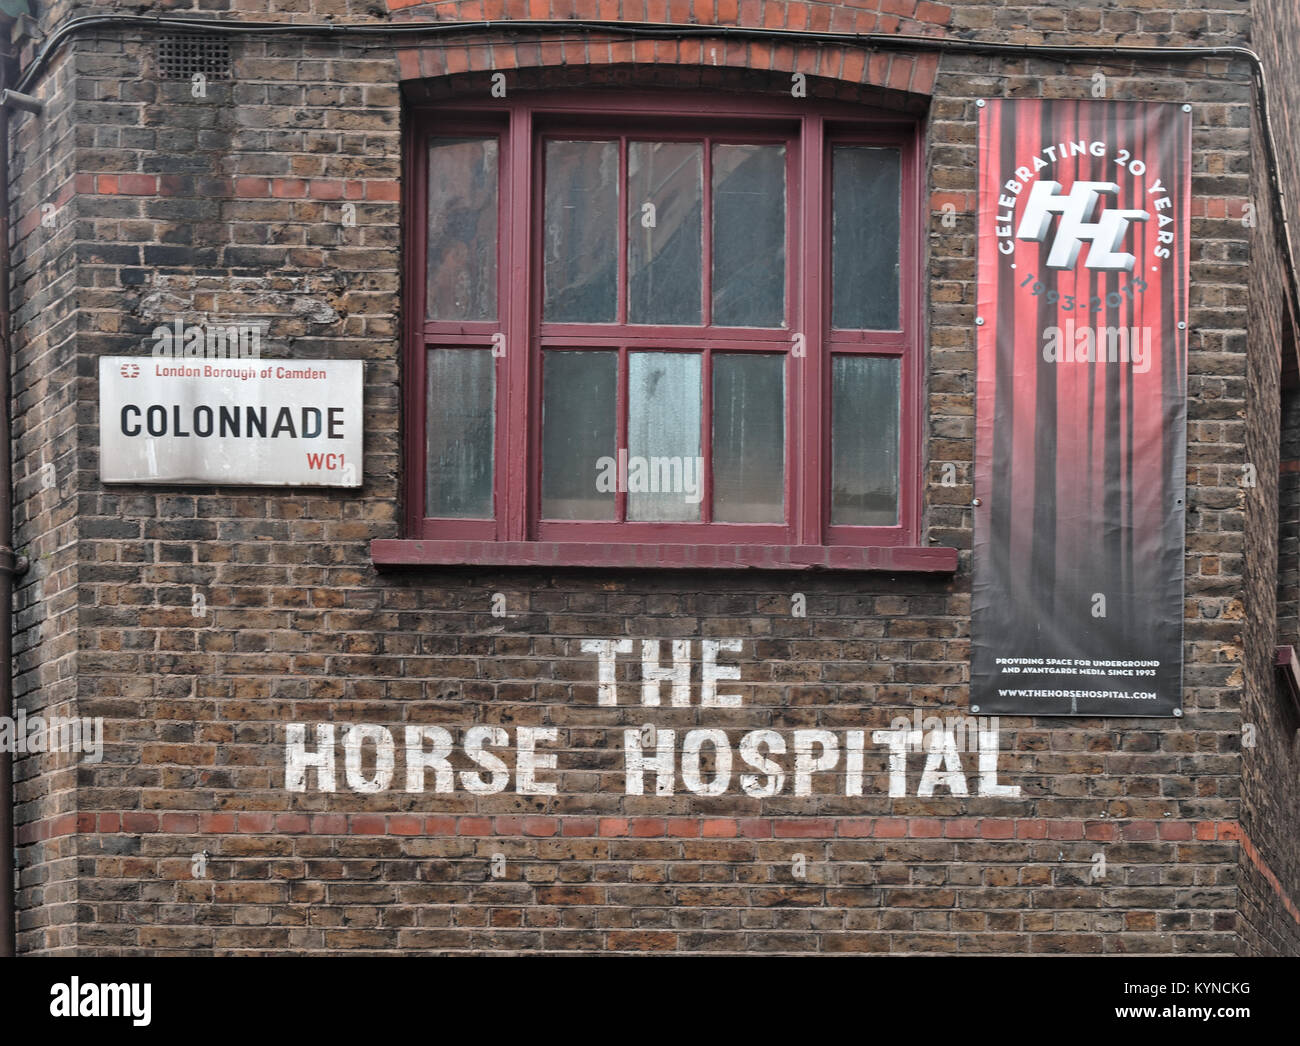 The Horse Hospital. London, England, UK - Stock Image